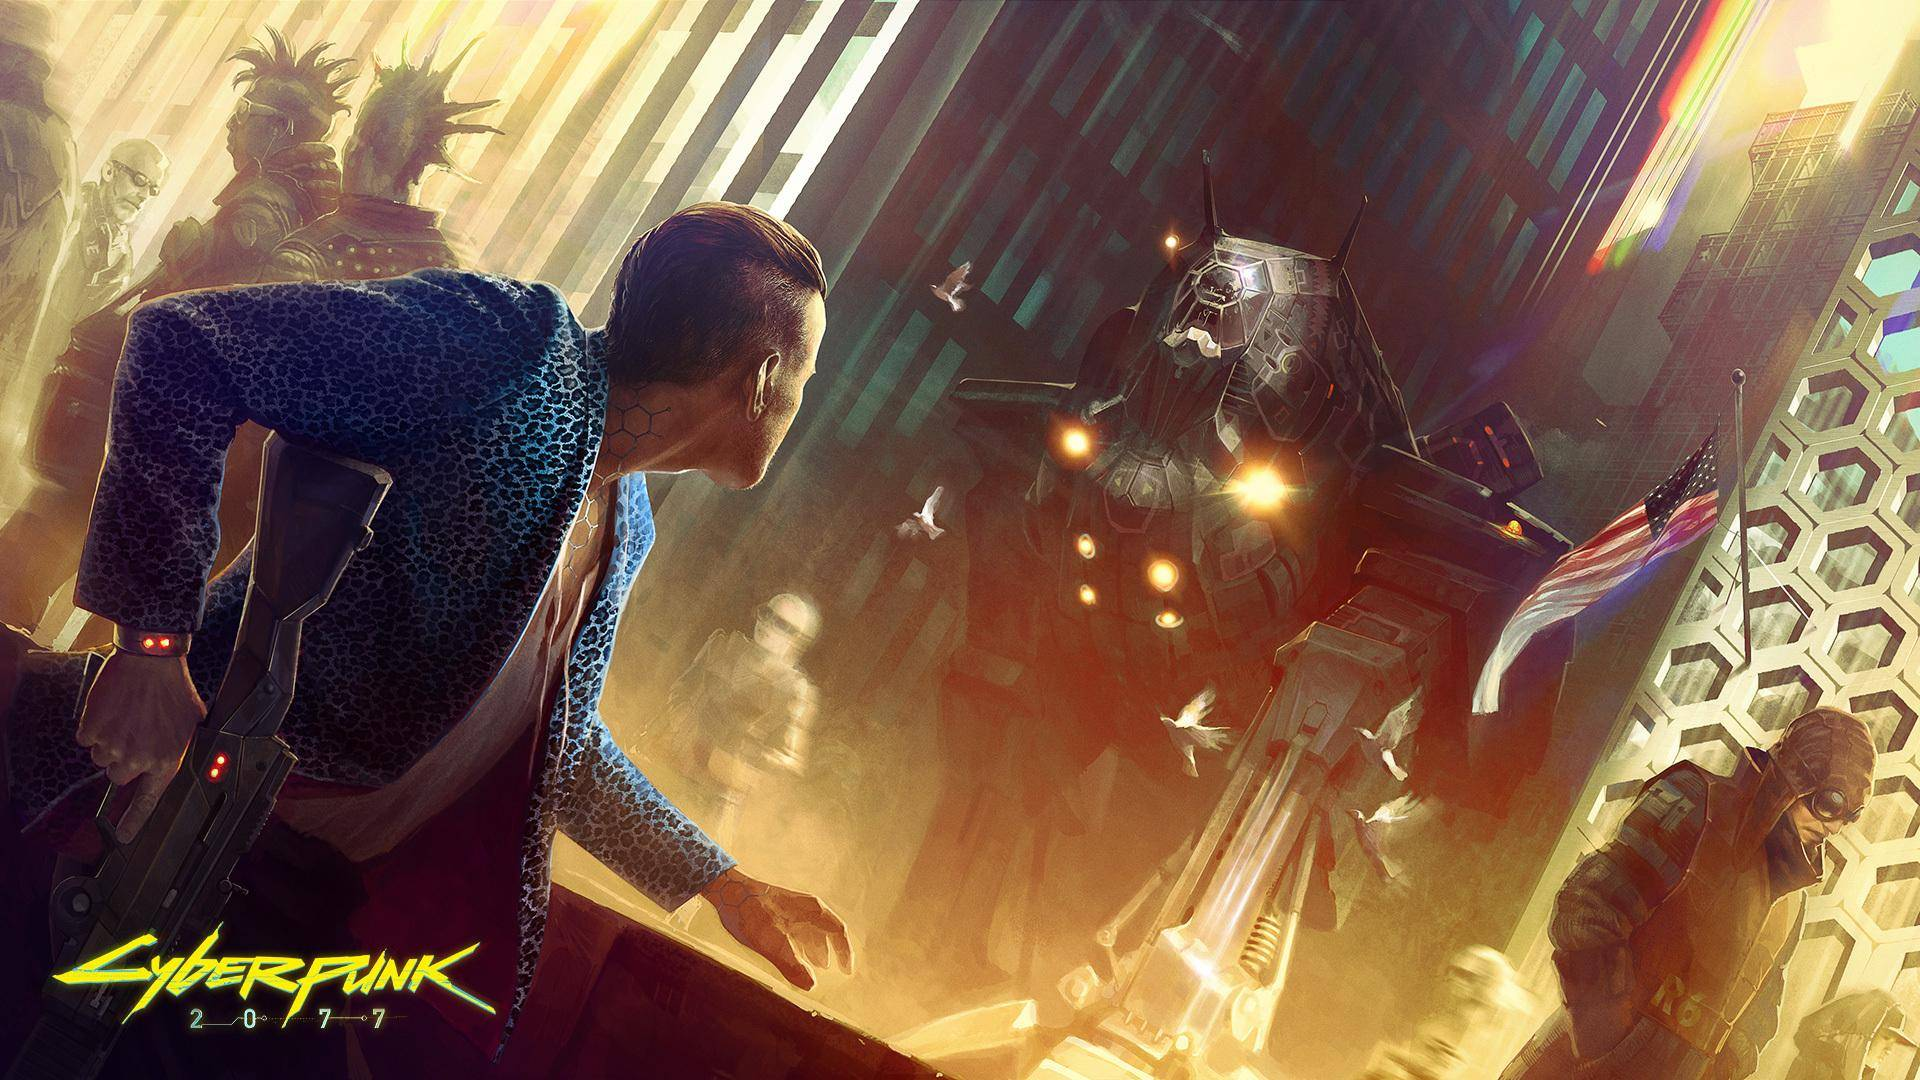 Cyberpunk 2077 developer cd projekt red looking to hire concept cyberpunk 2077 hd wallpaper voltagebd